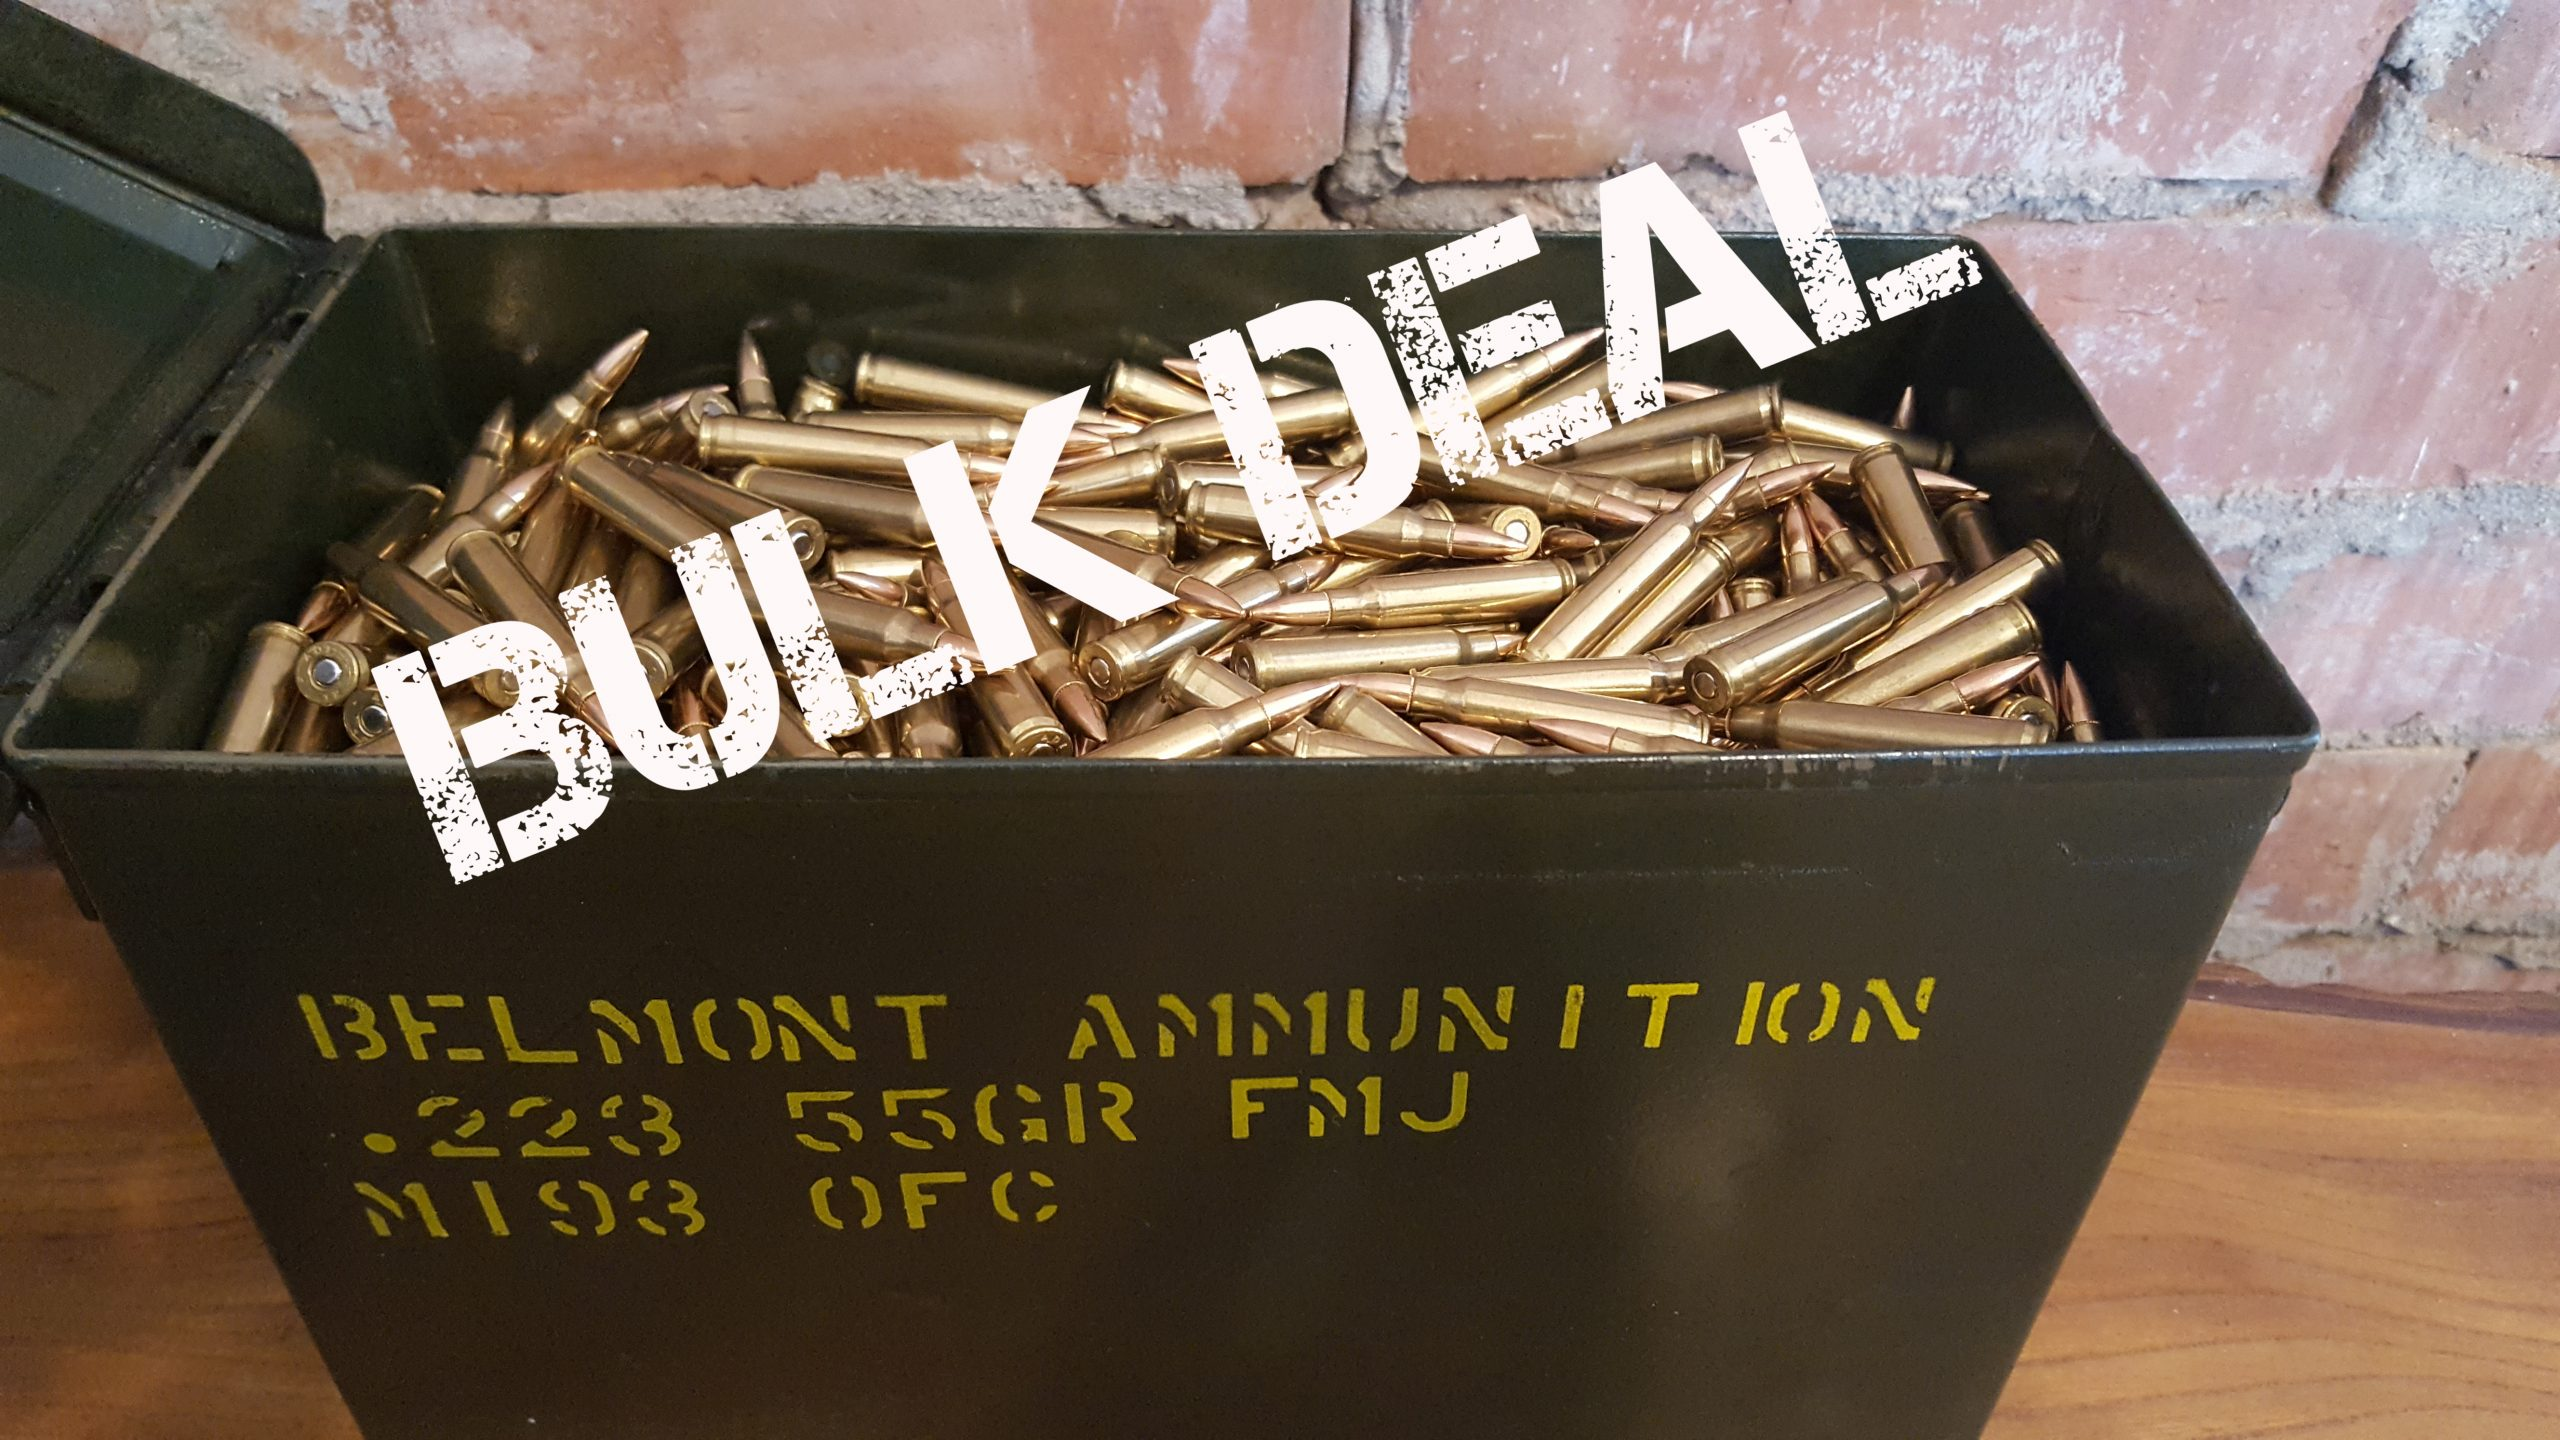 Bulk deal! 1000 rounds .223 FMJ just $449.00 delivered